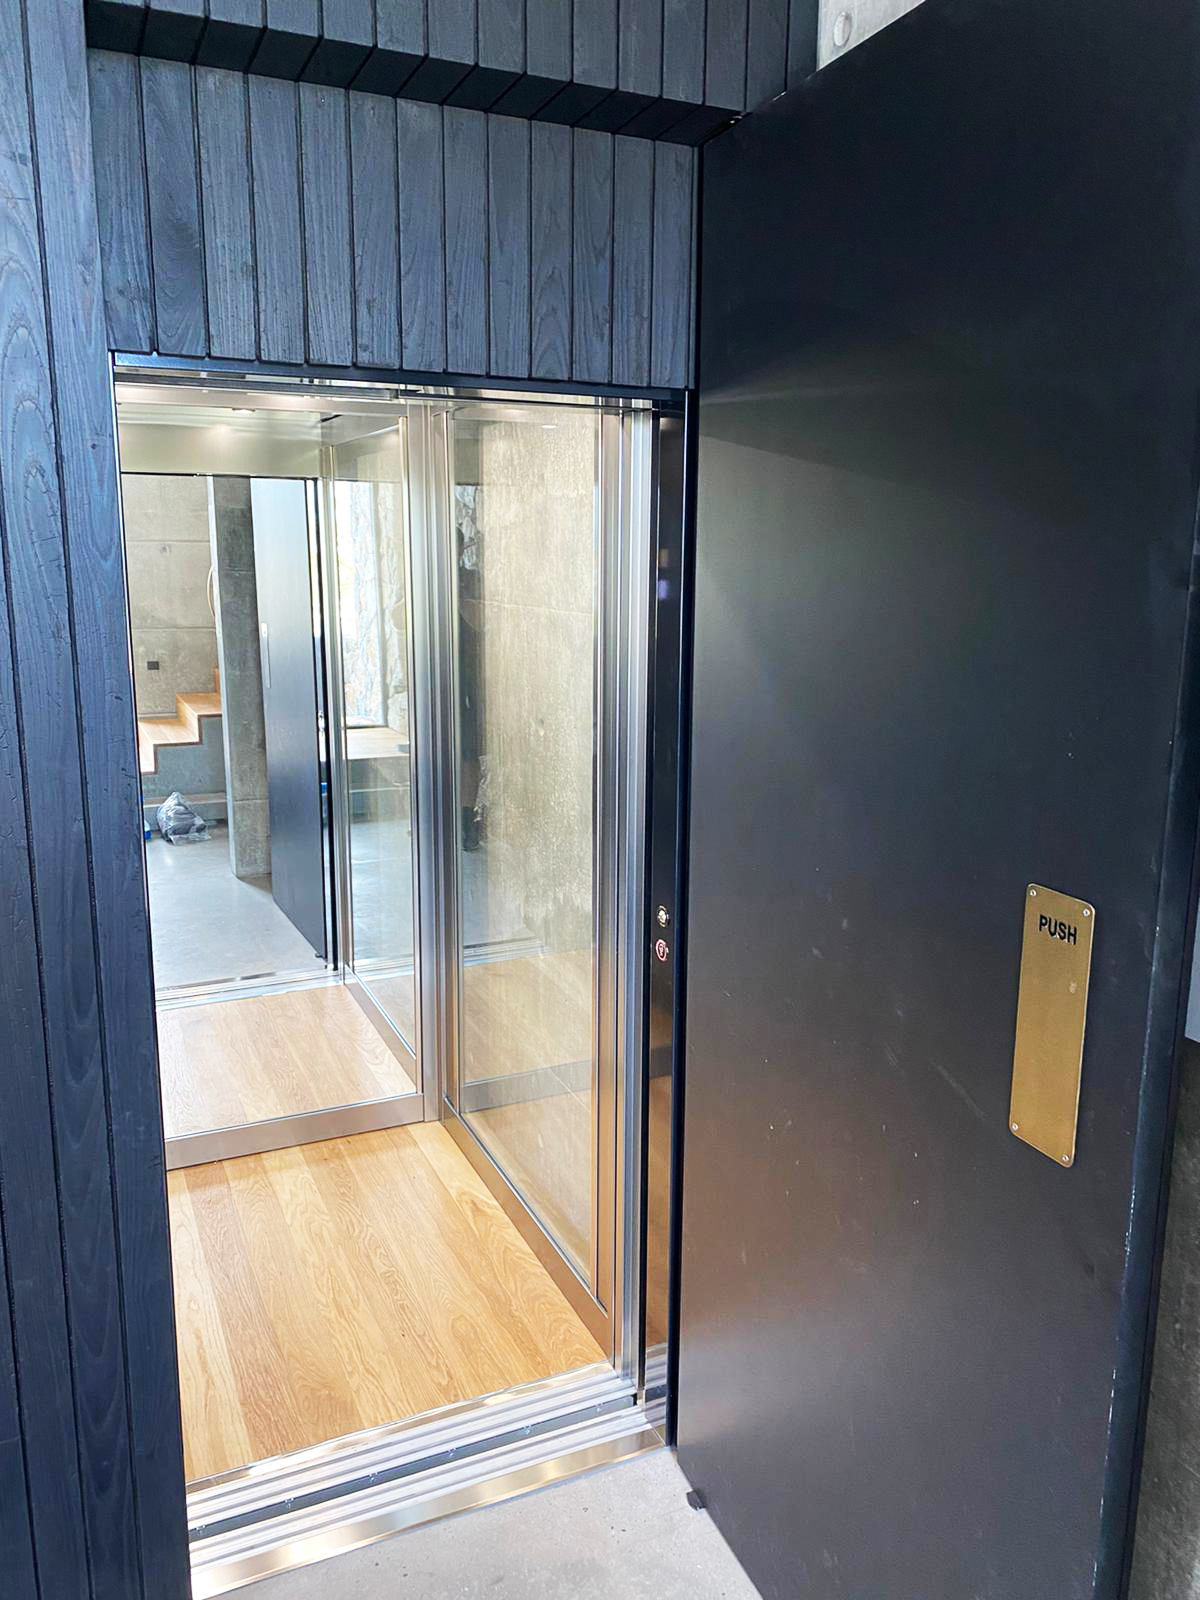 retrofitting a lift into your perth home - after